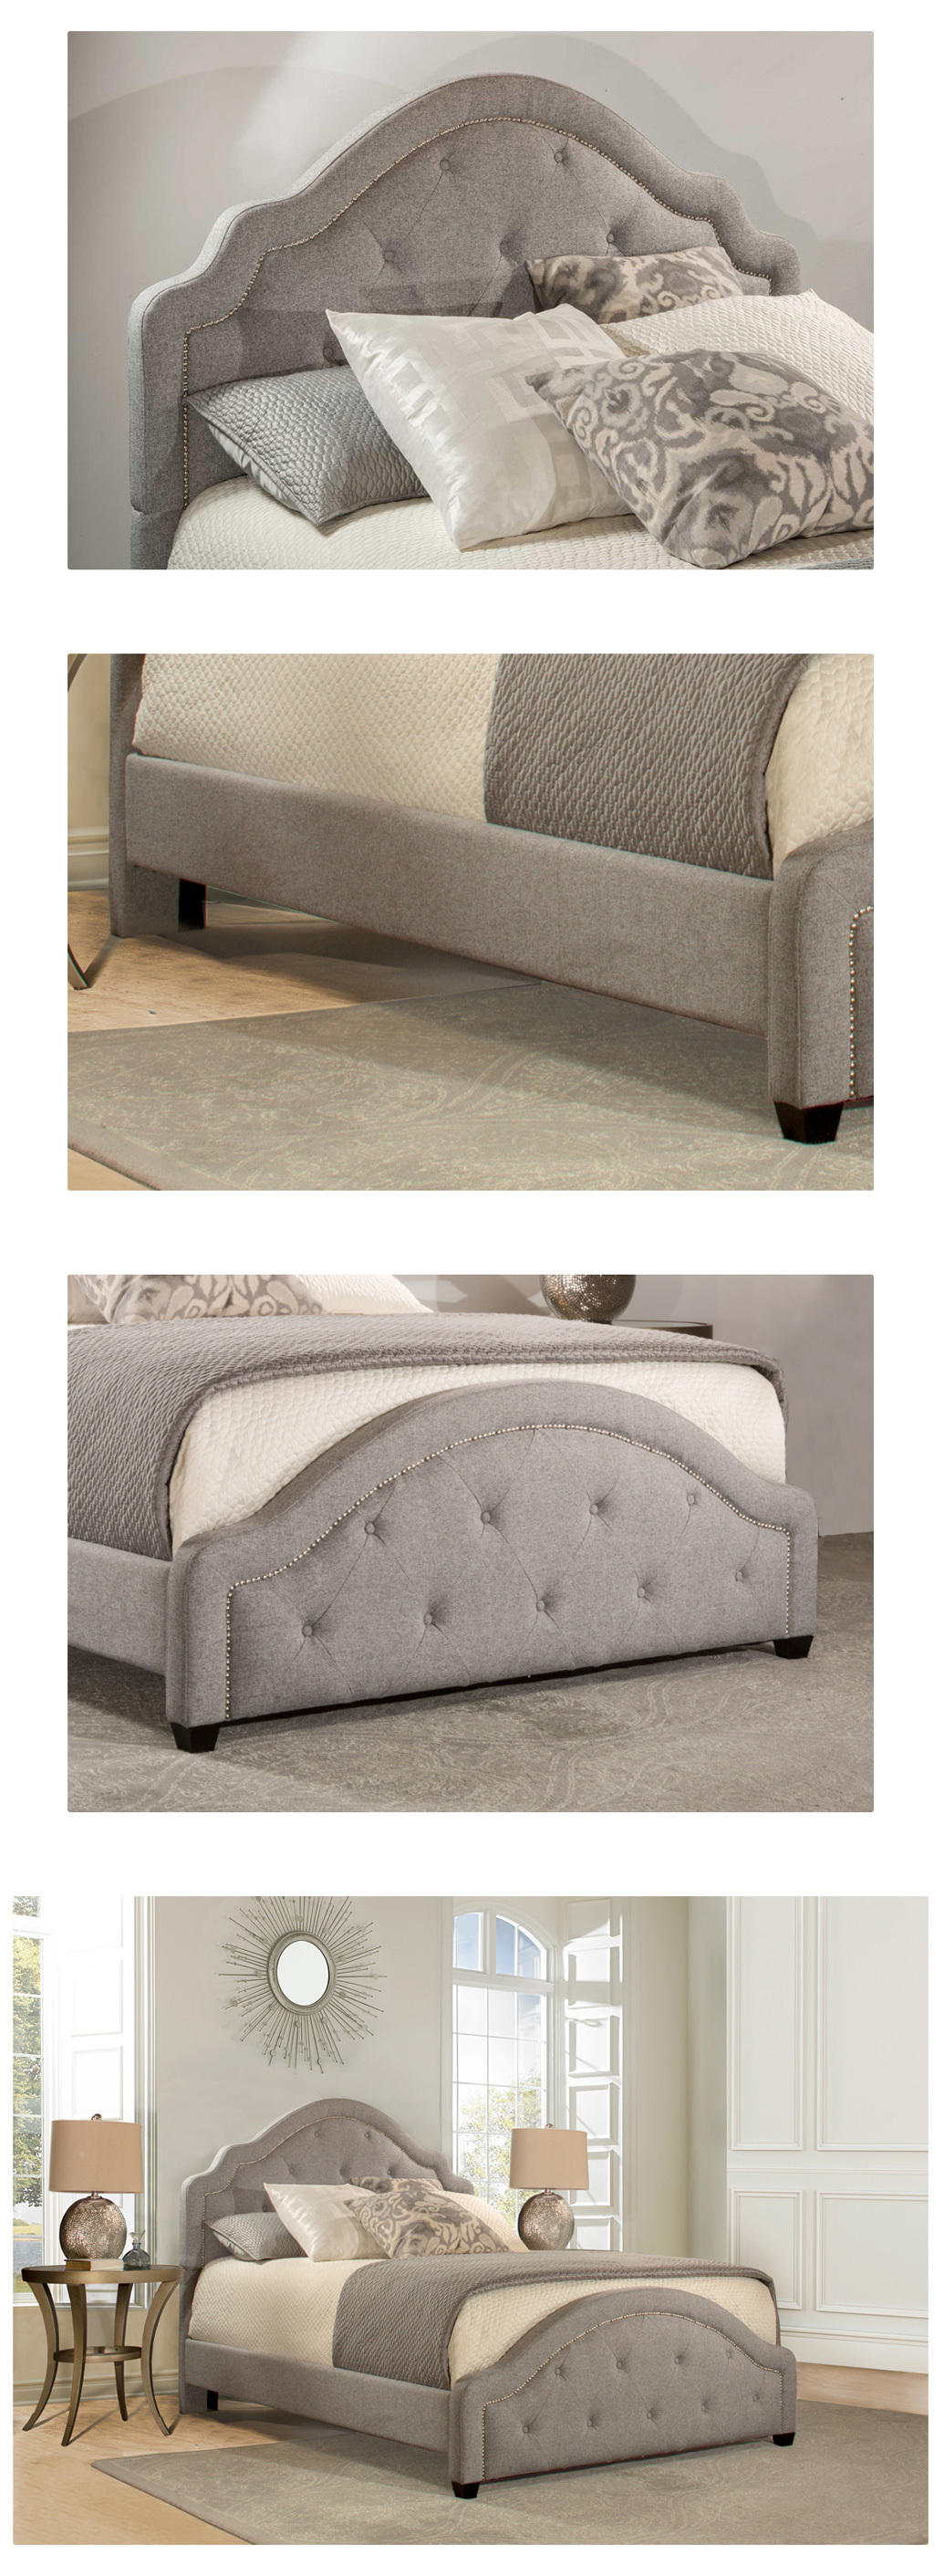 2138_belize_collection_bed_02.jpg